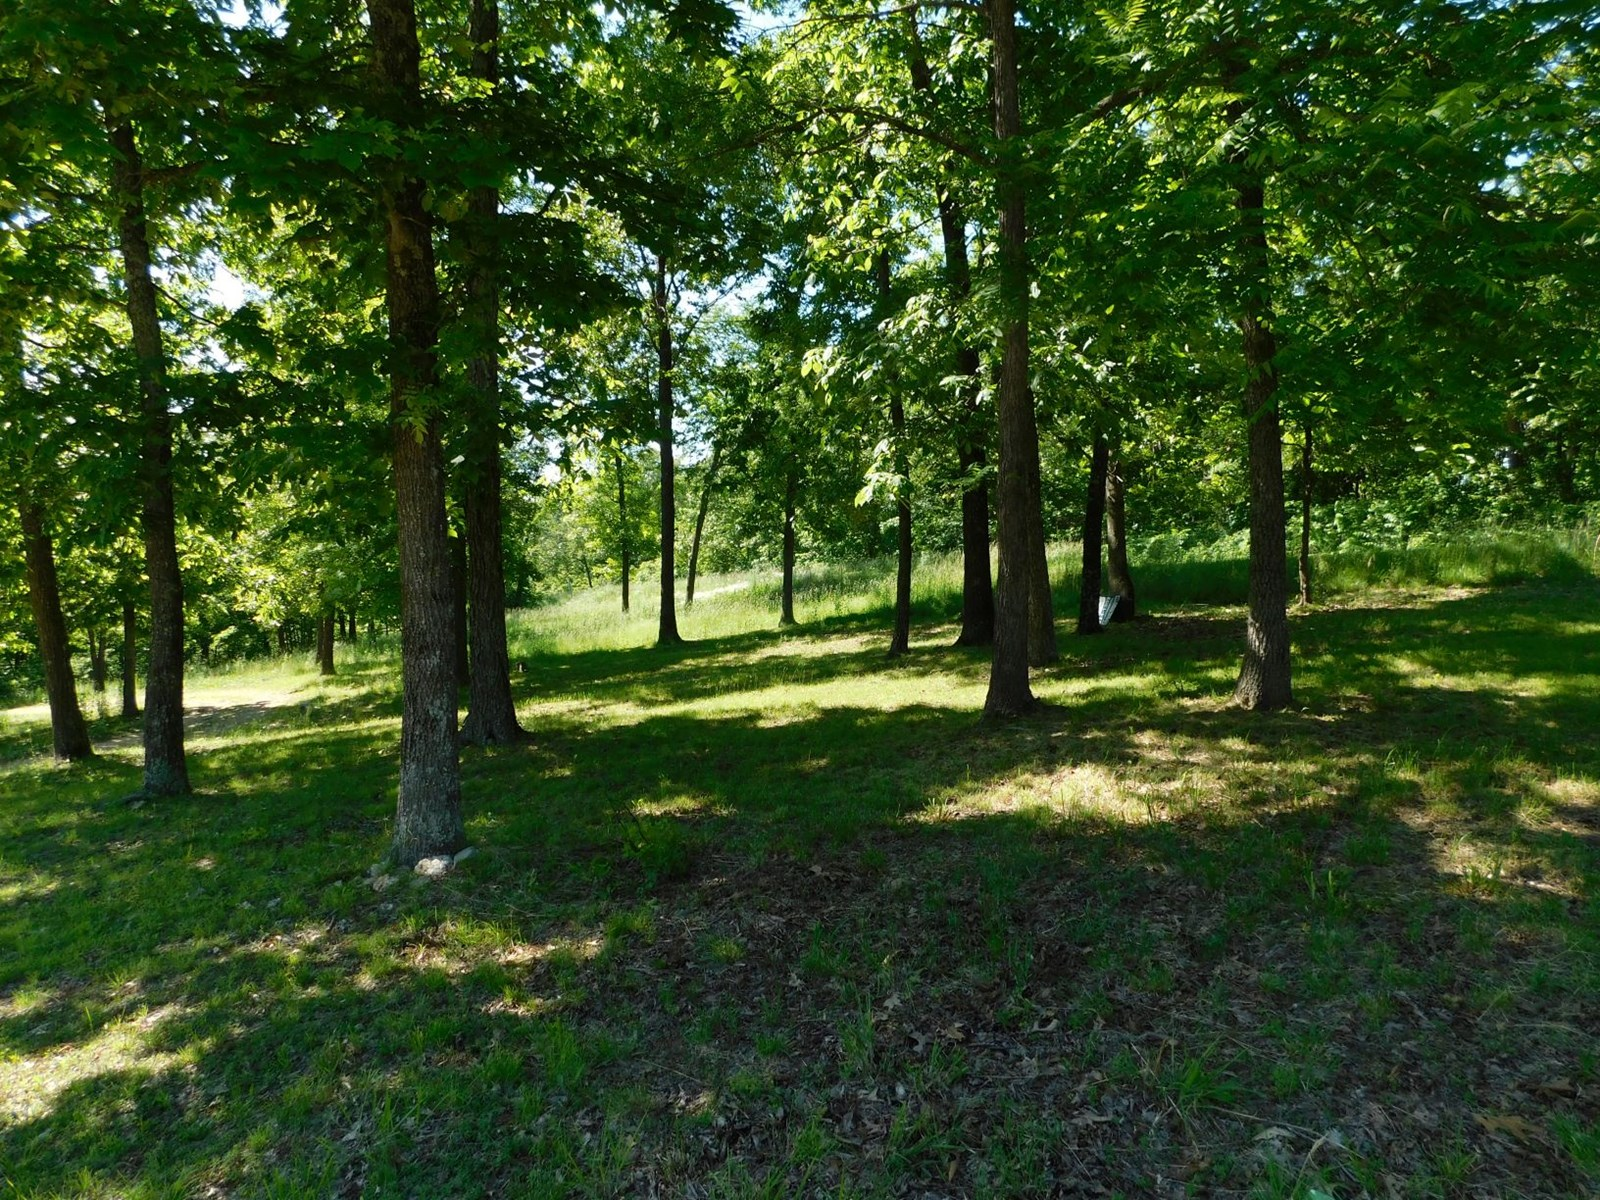 Cabin and Land for Sale in Southern Missouri - Private